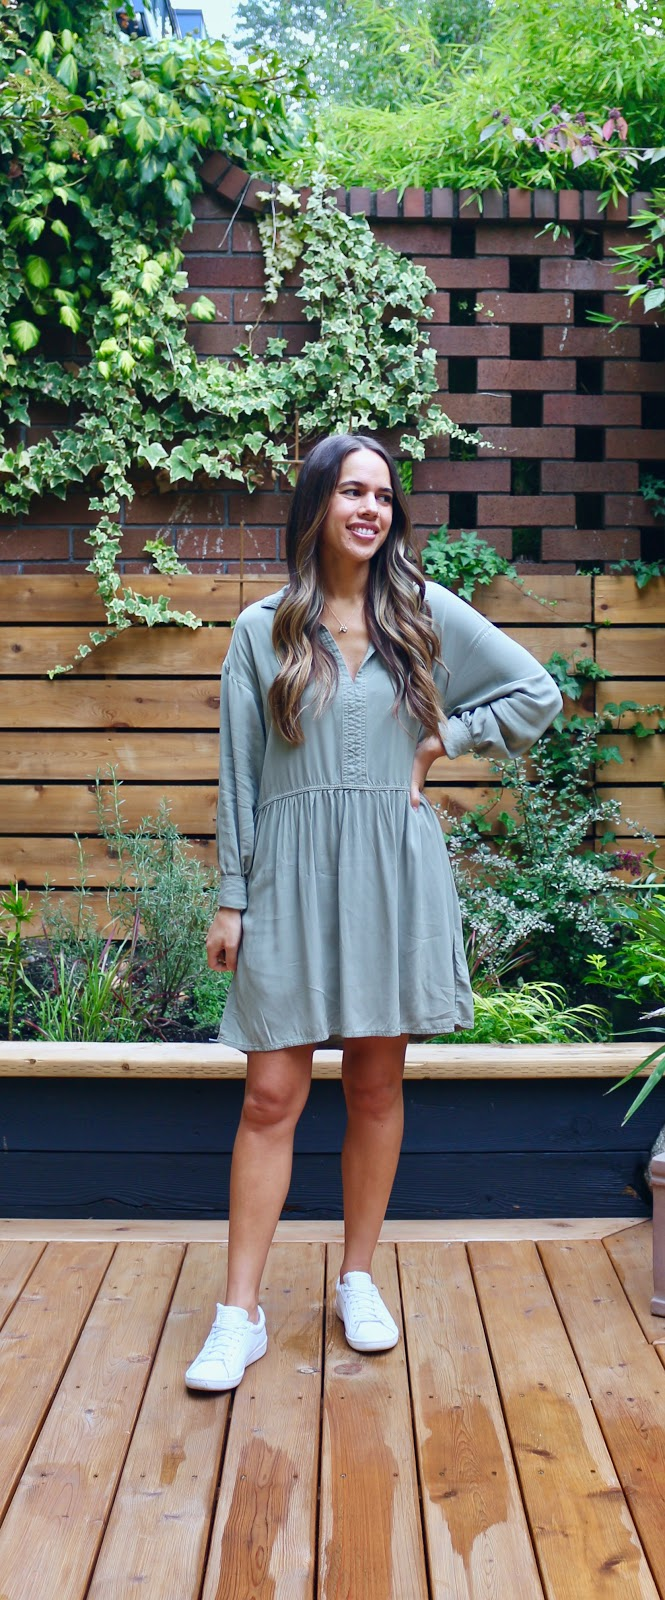 Jules in Flats - Long Sleeve Mini Dress with Sneakers (Business Casual Workwear on a Budget)